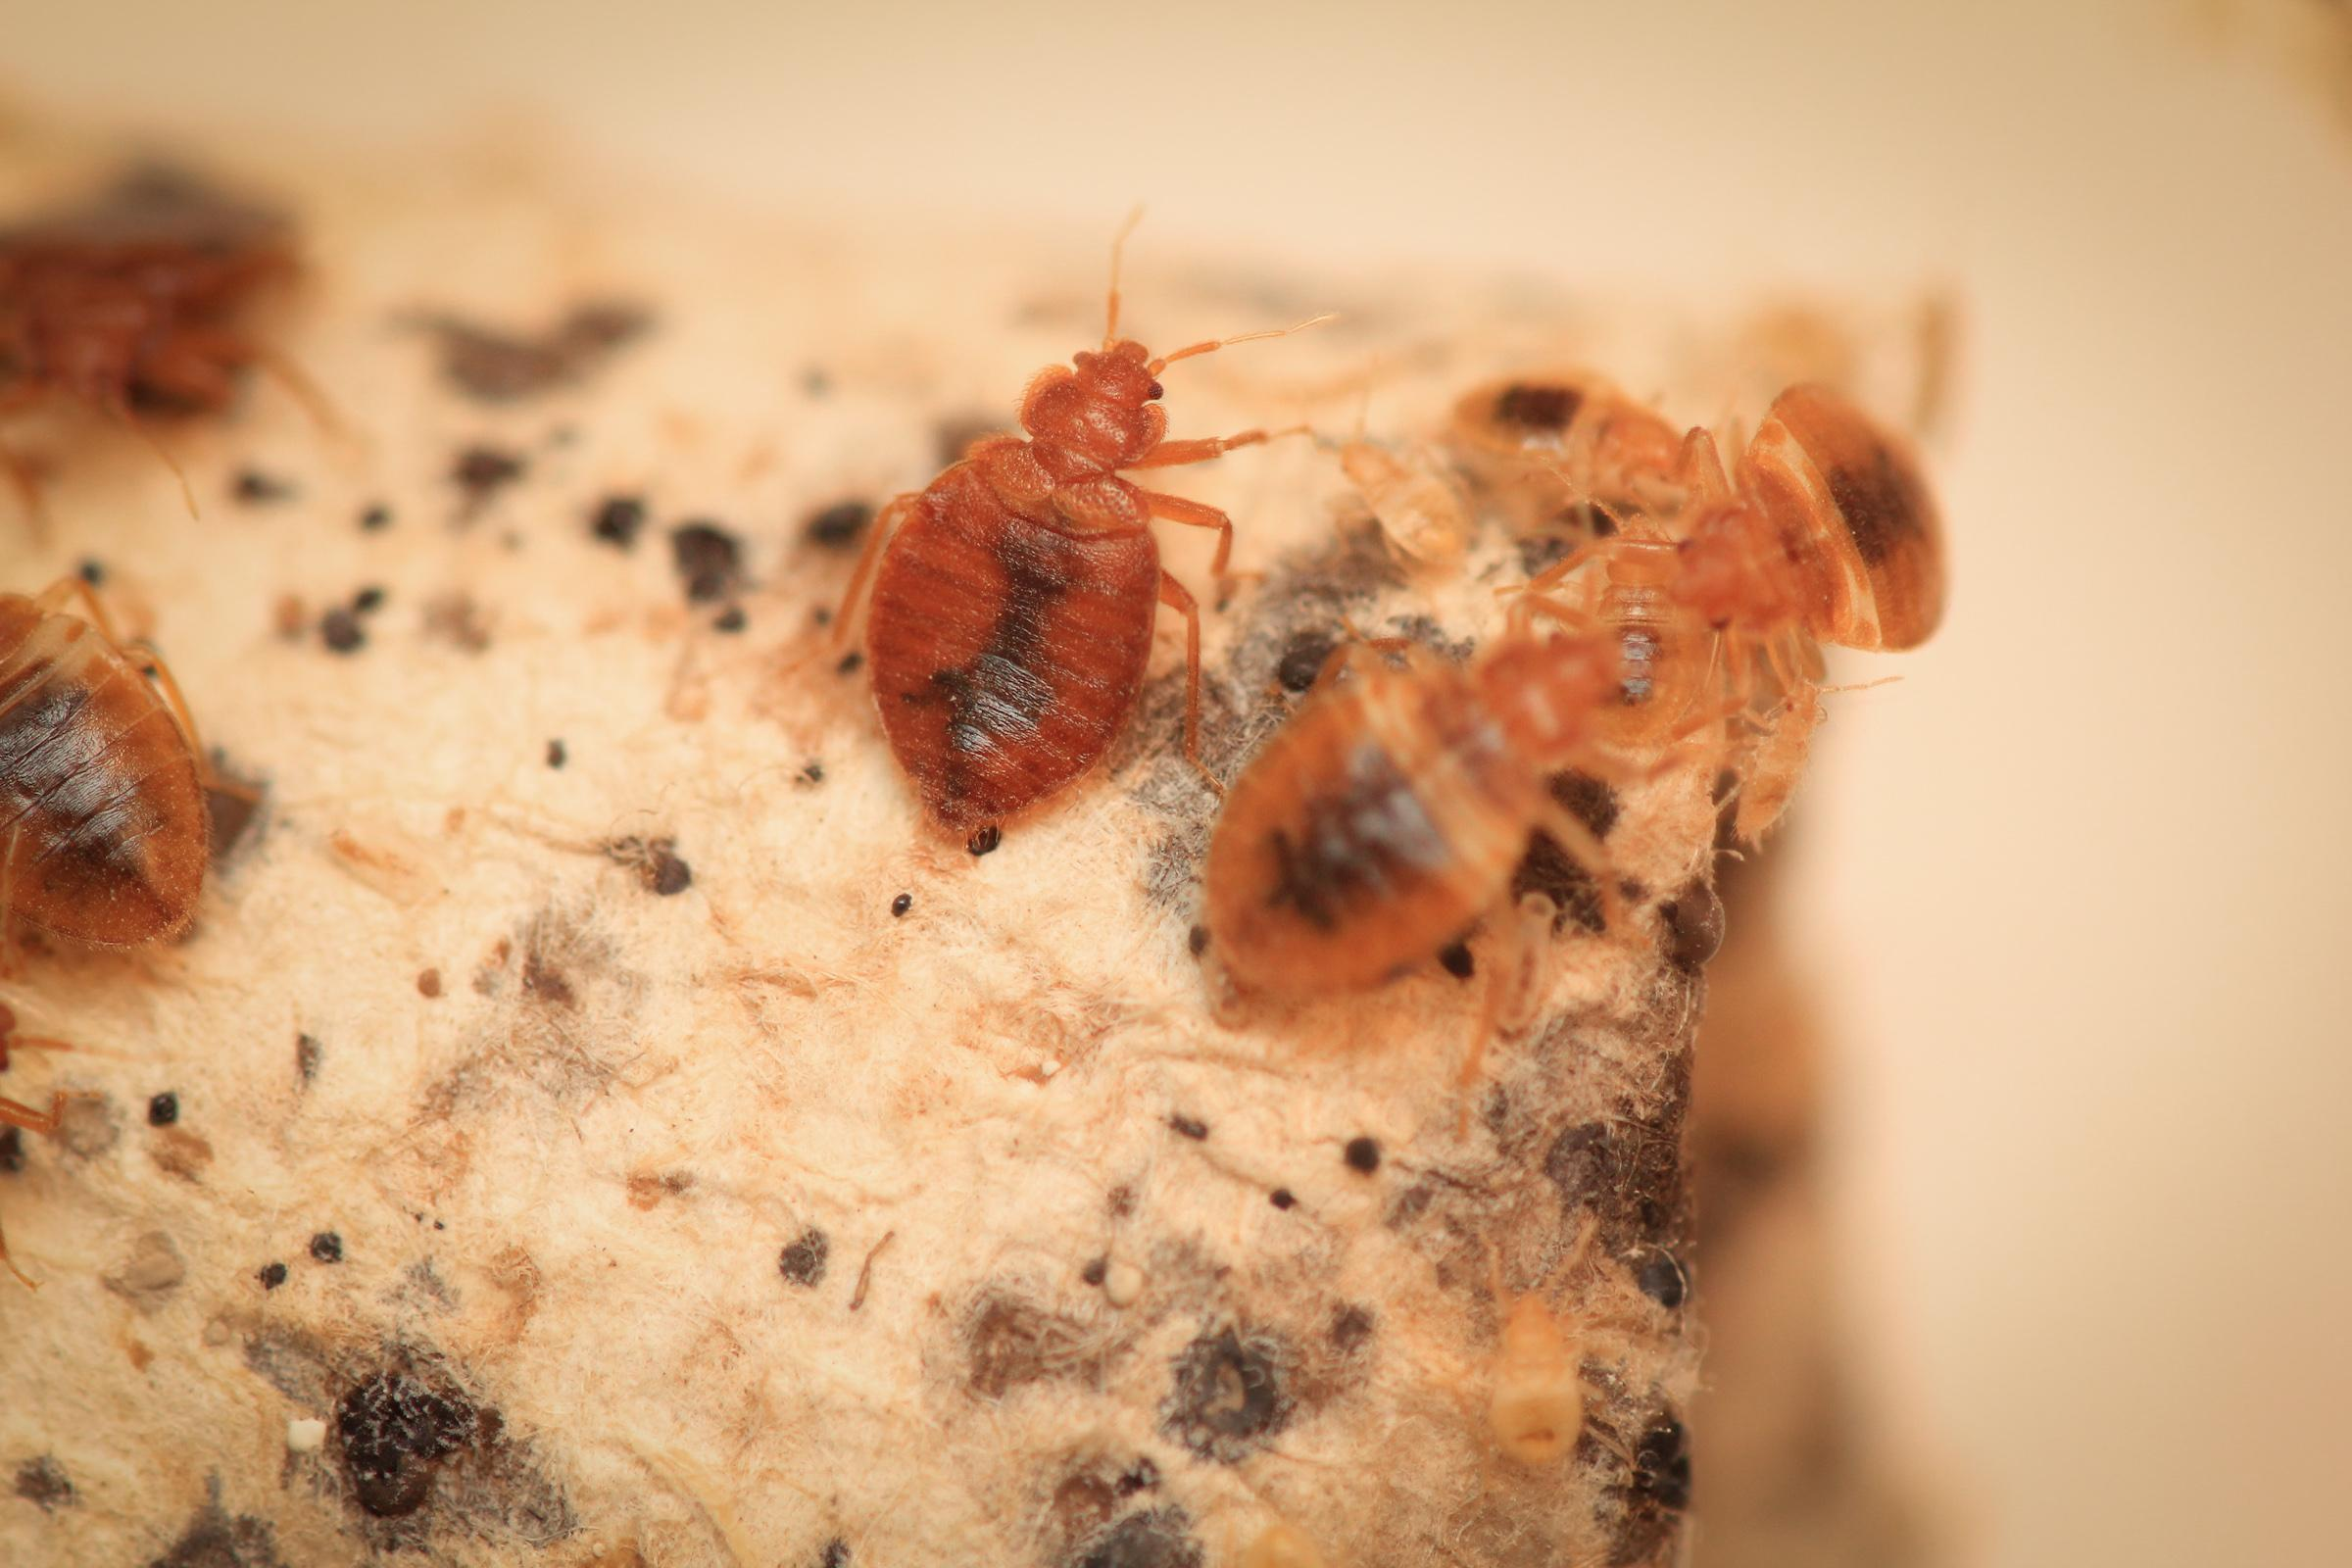 pictures of bed bugs - HD2400×1600